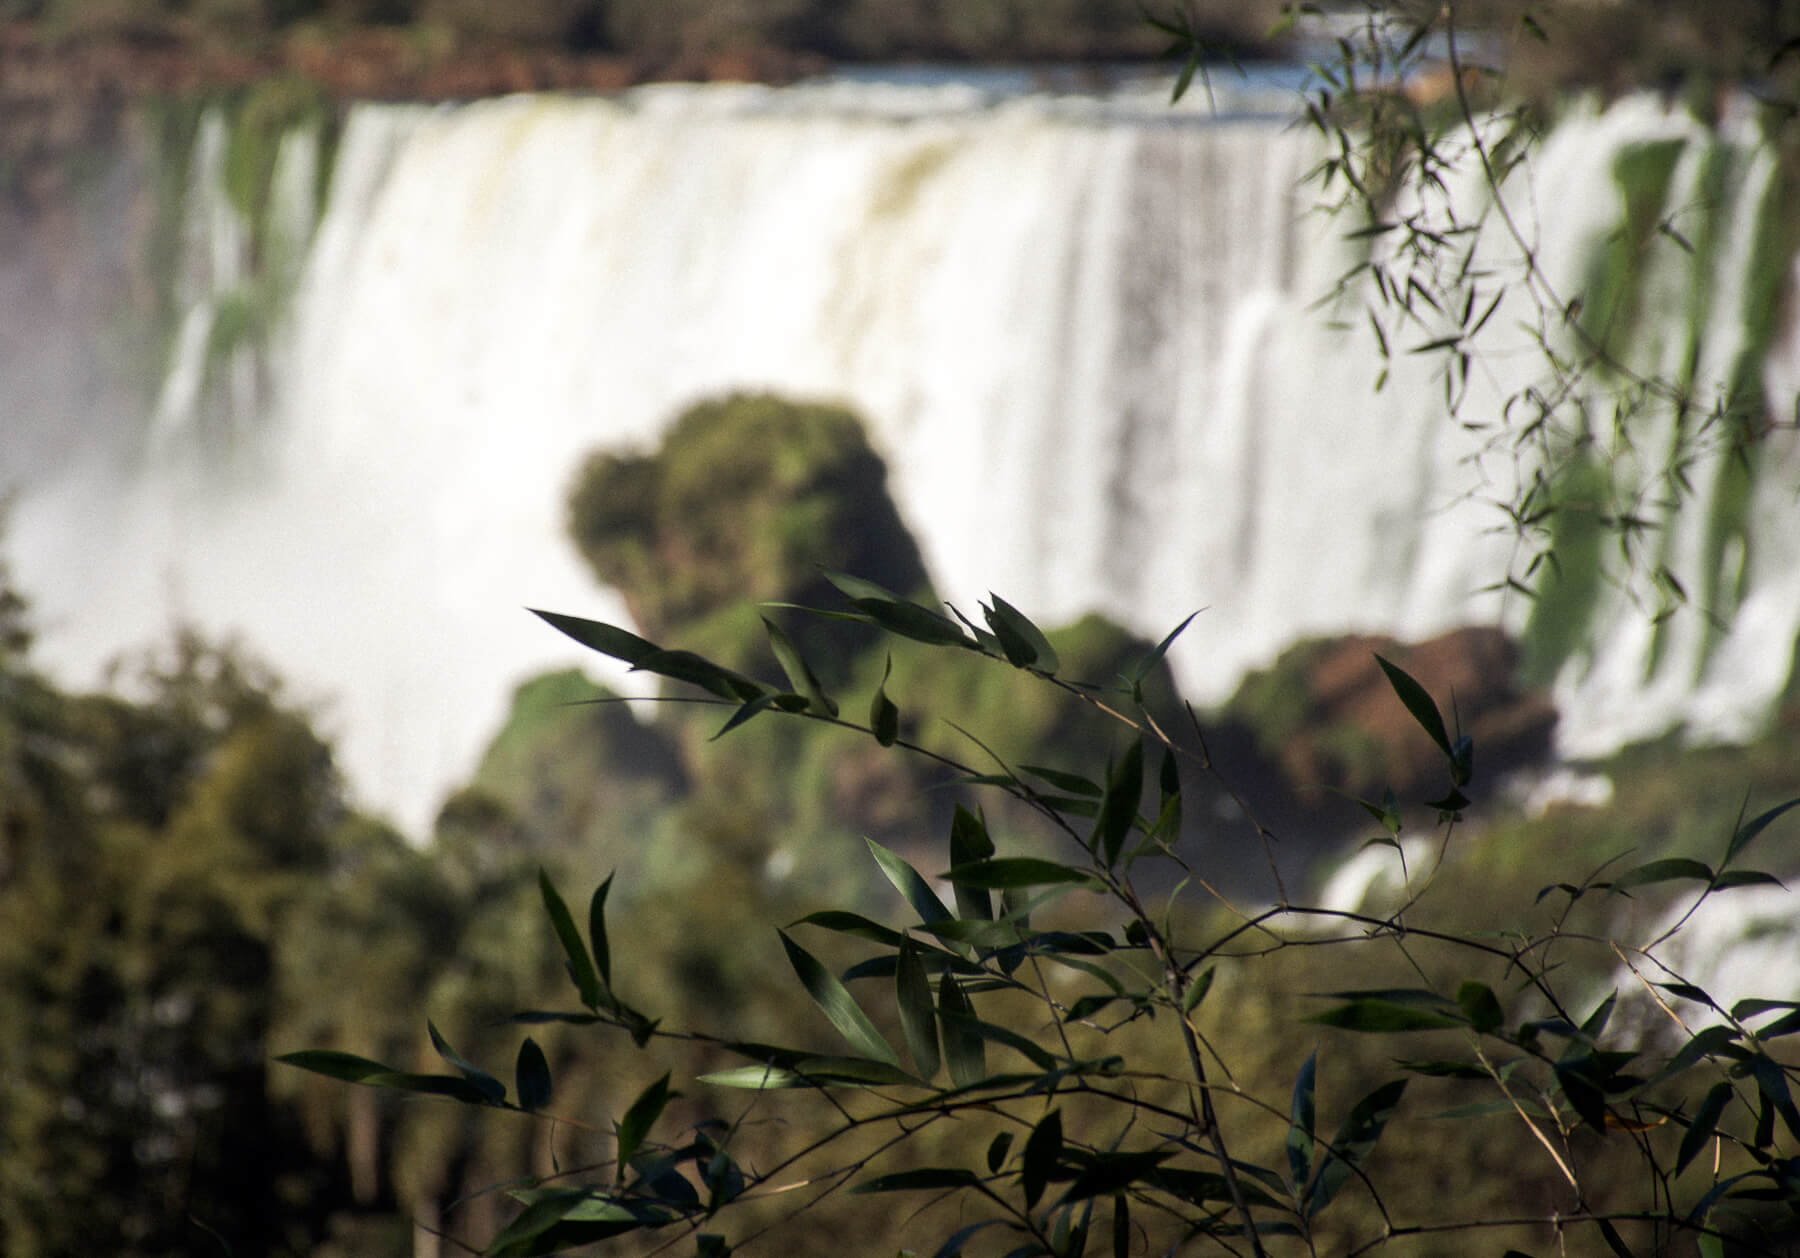 The leaves of a plant focused in the foreground with Iguazu Falls out of focus behind